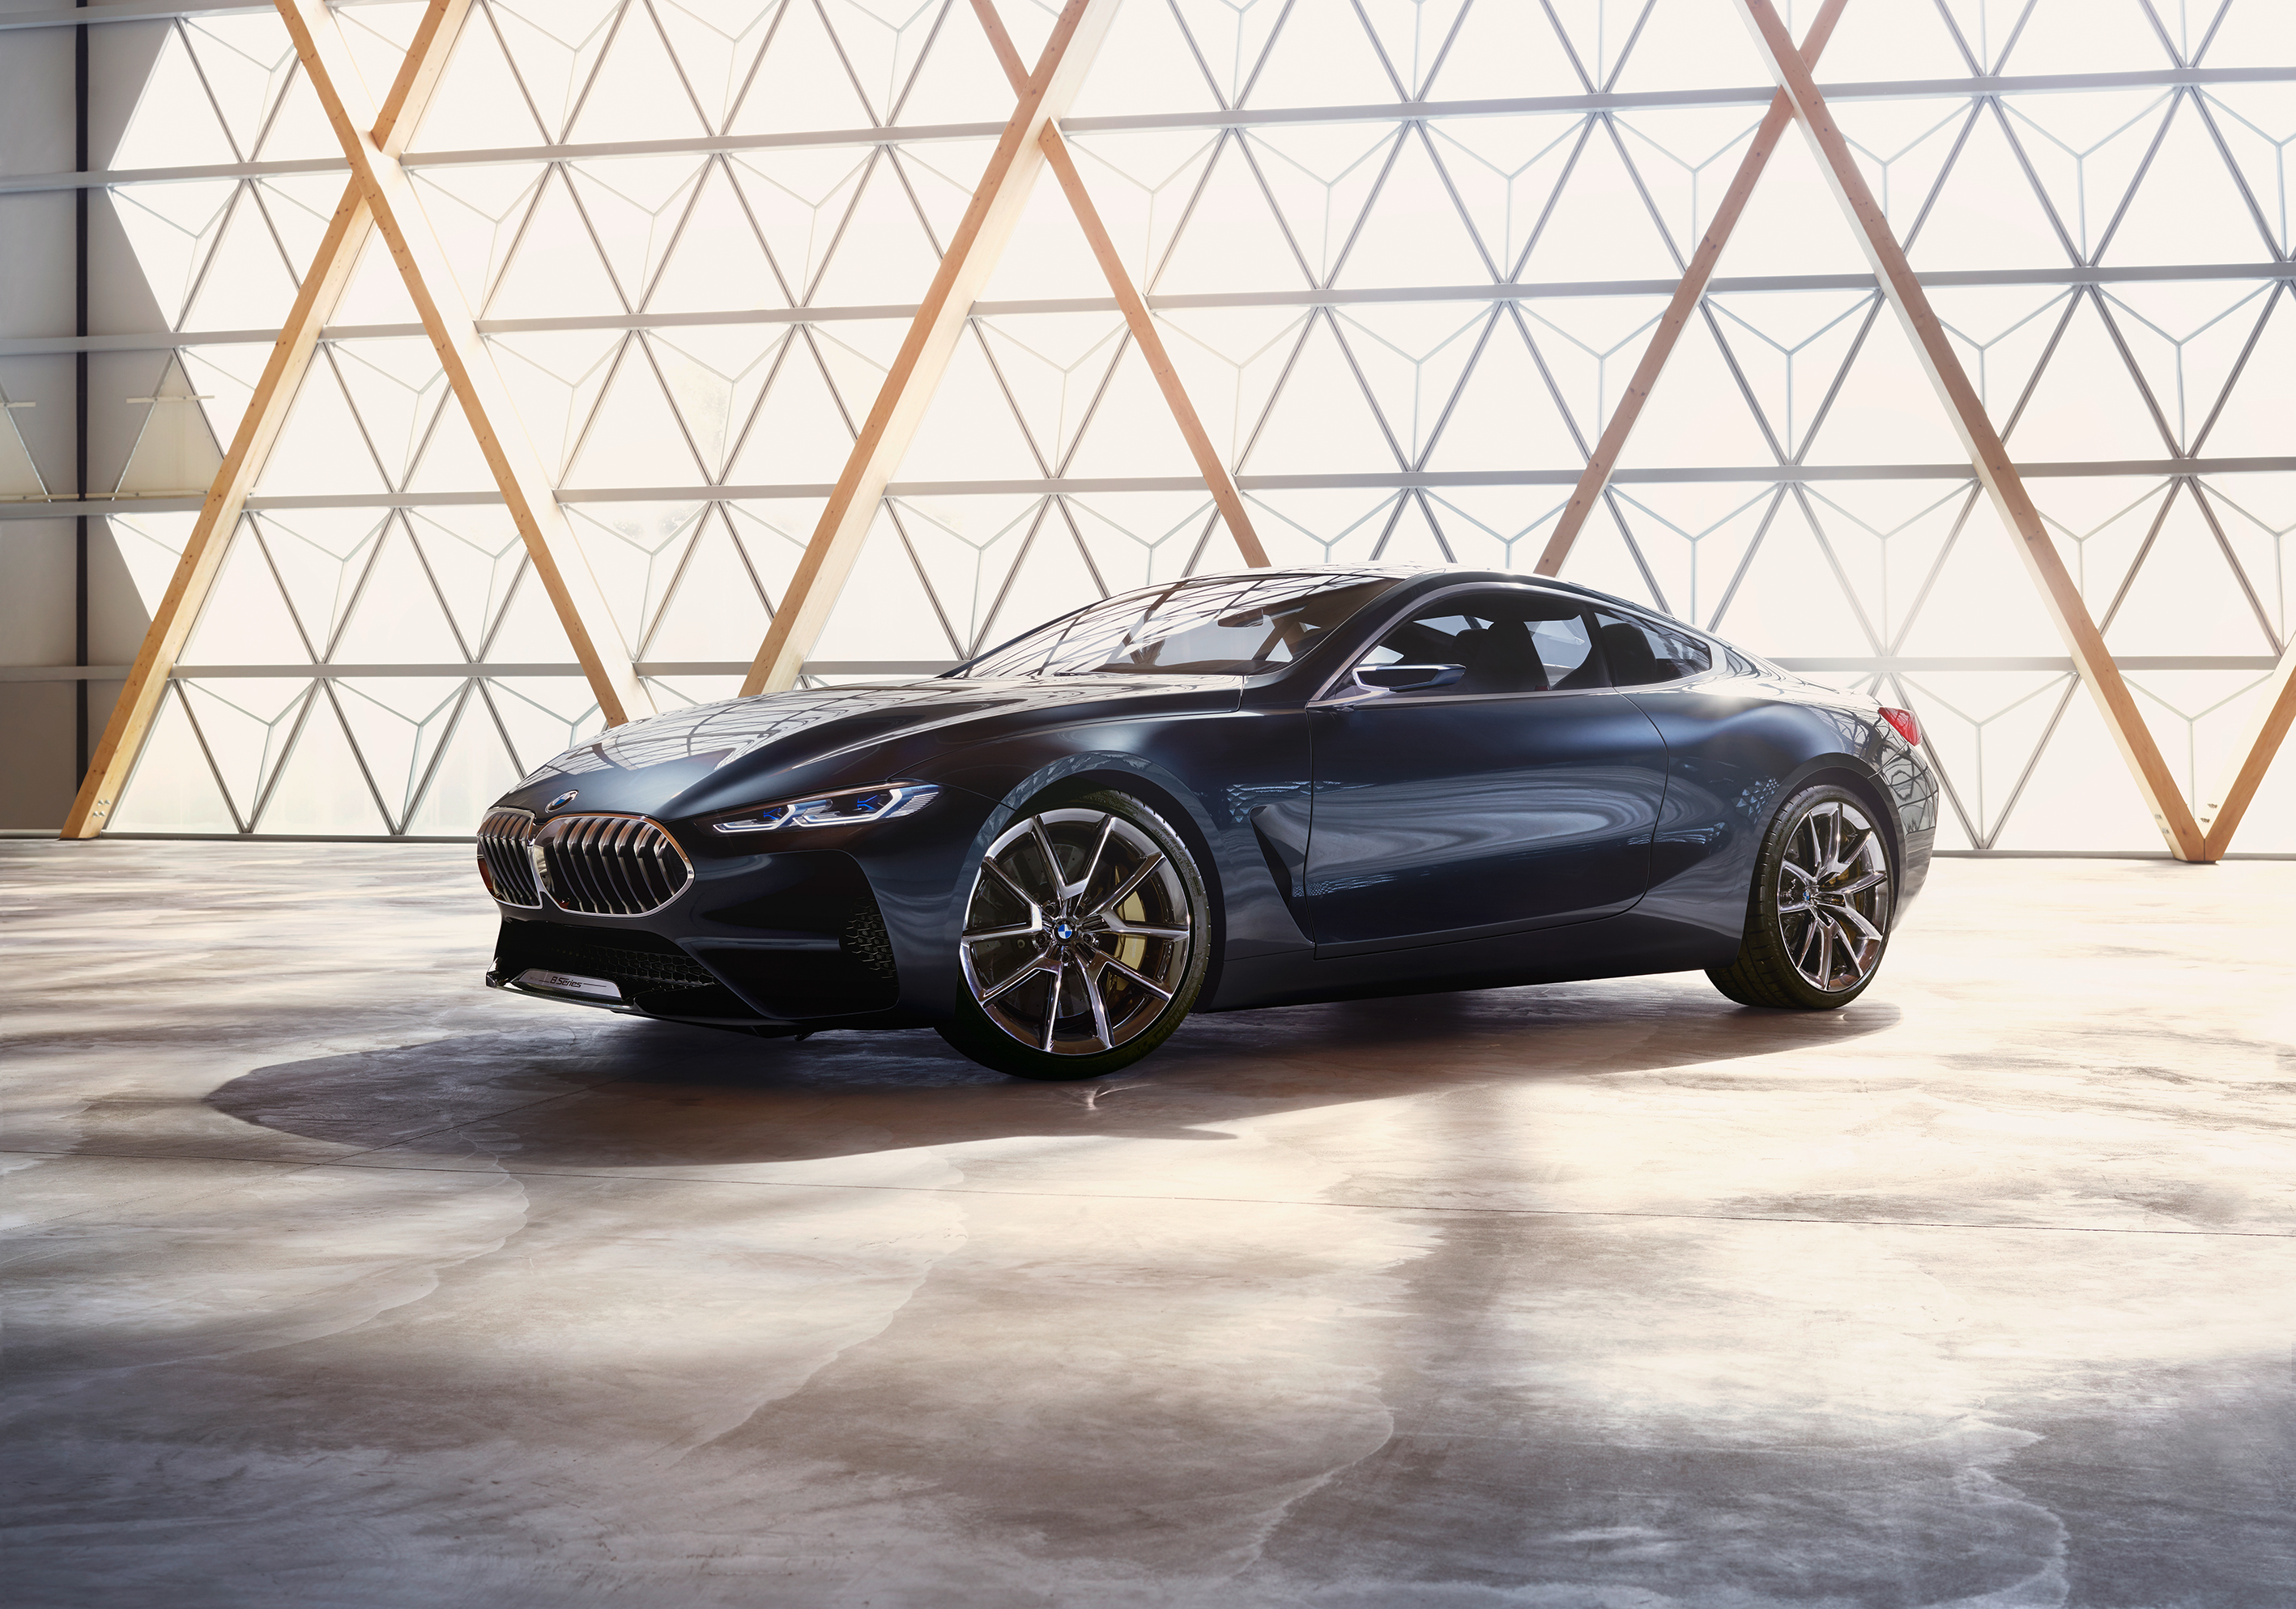 Top 10 most affordable luxury cars autospies auto news - The Exterior Brings Together The Past And The Future The Bmw Concept